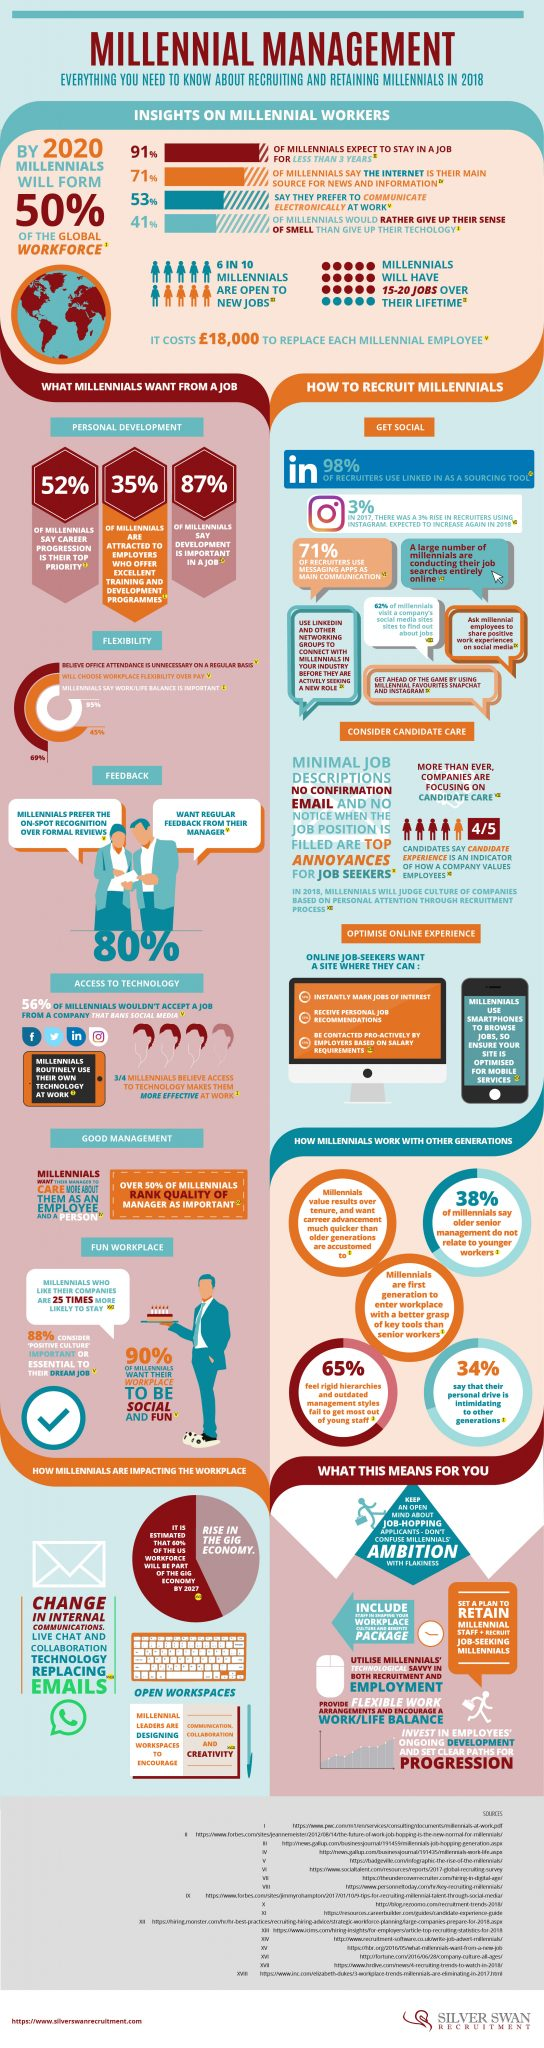 Infographic about recruiting millennials in 2018